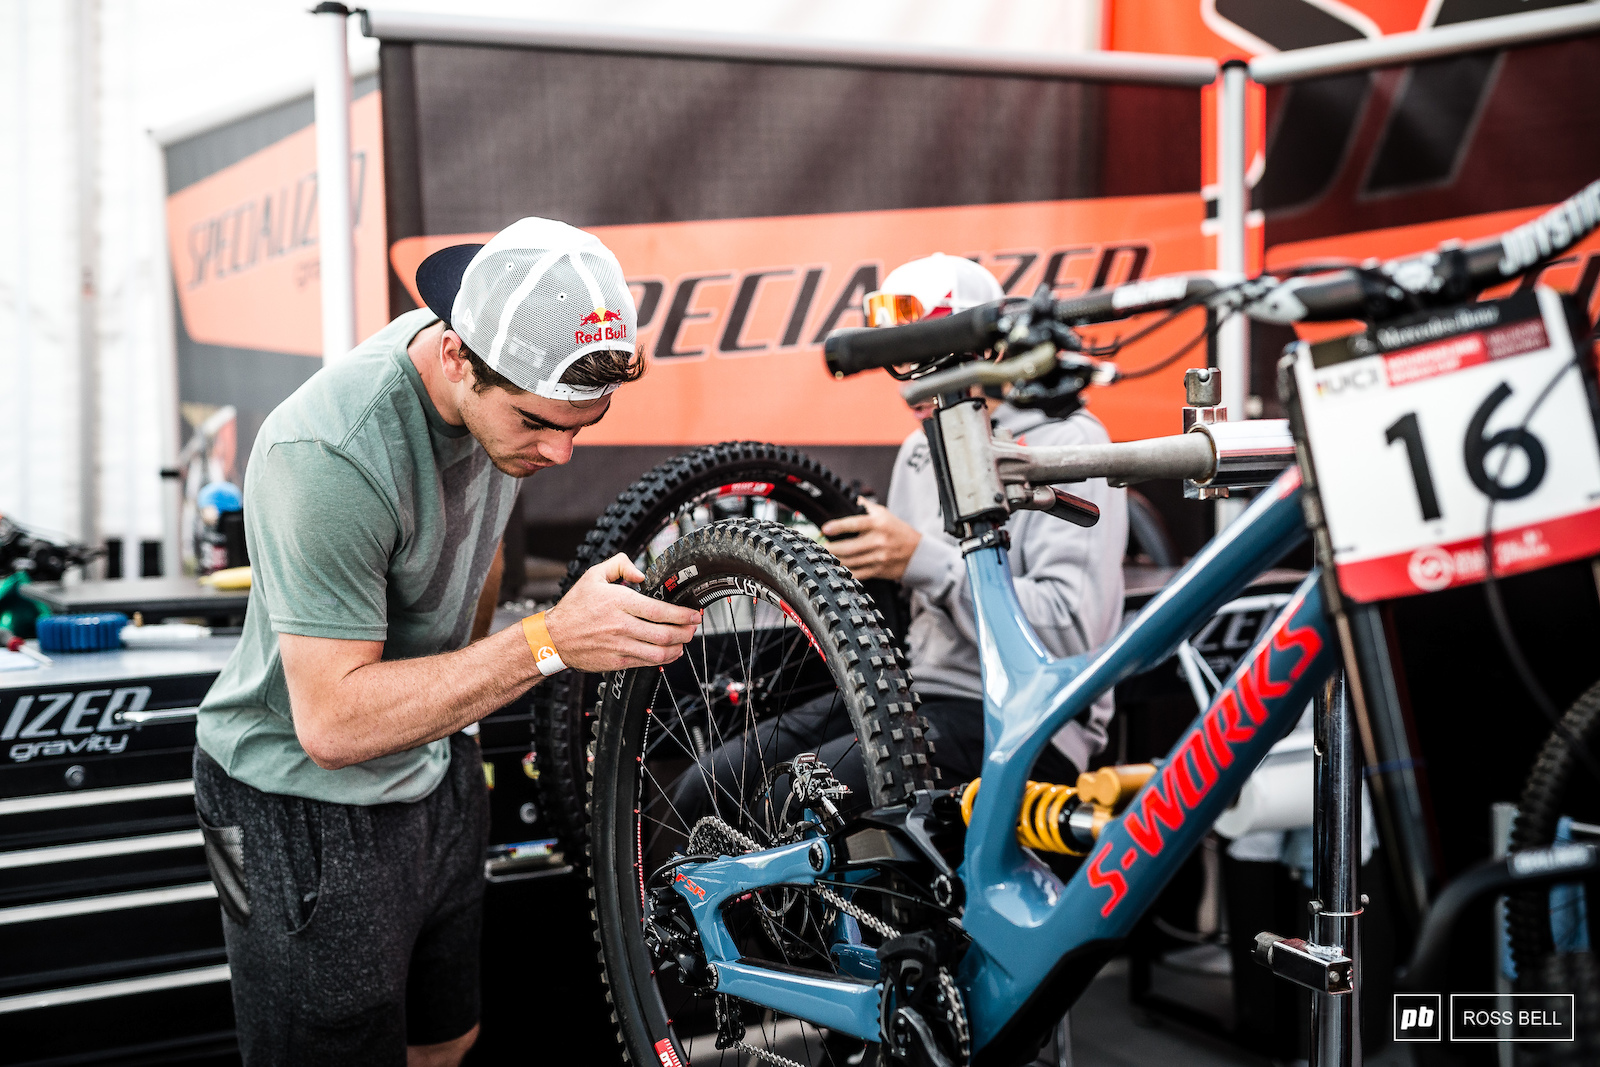 Loic Bruni inspecting his bike that mechanic Jack Roure meticulously prepared overnight.